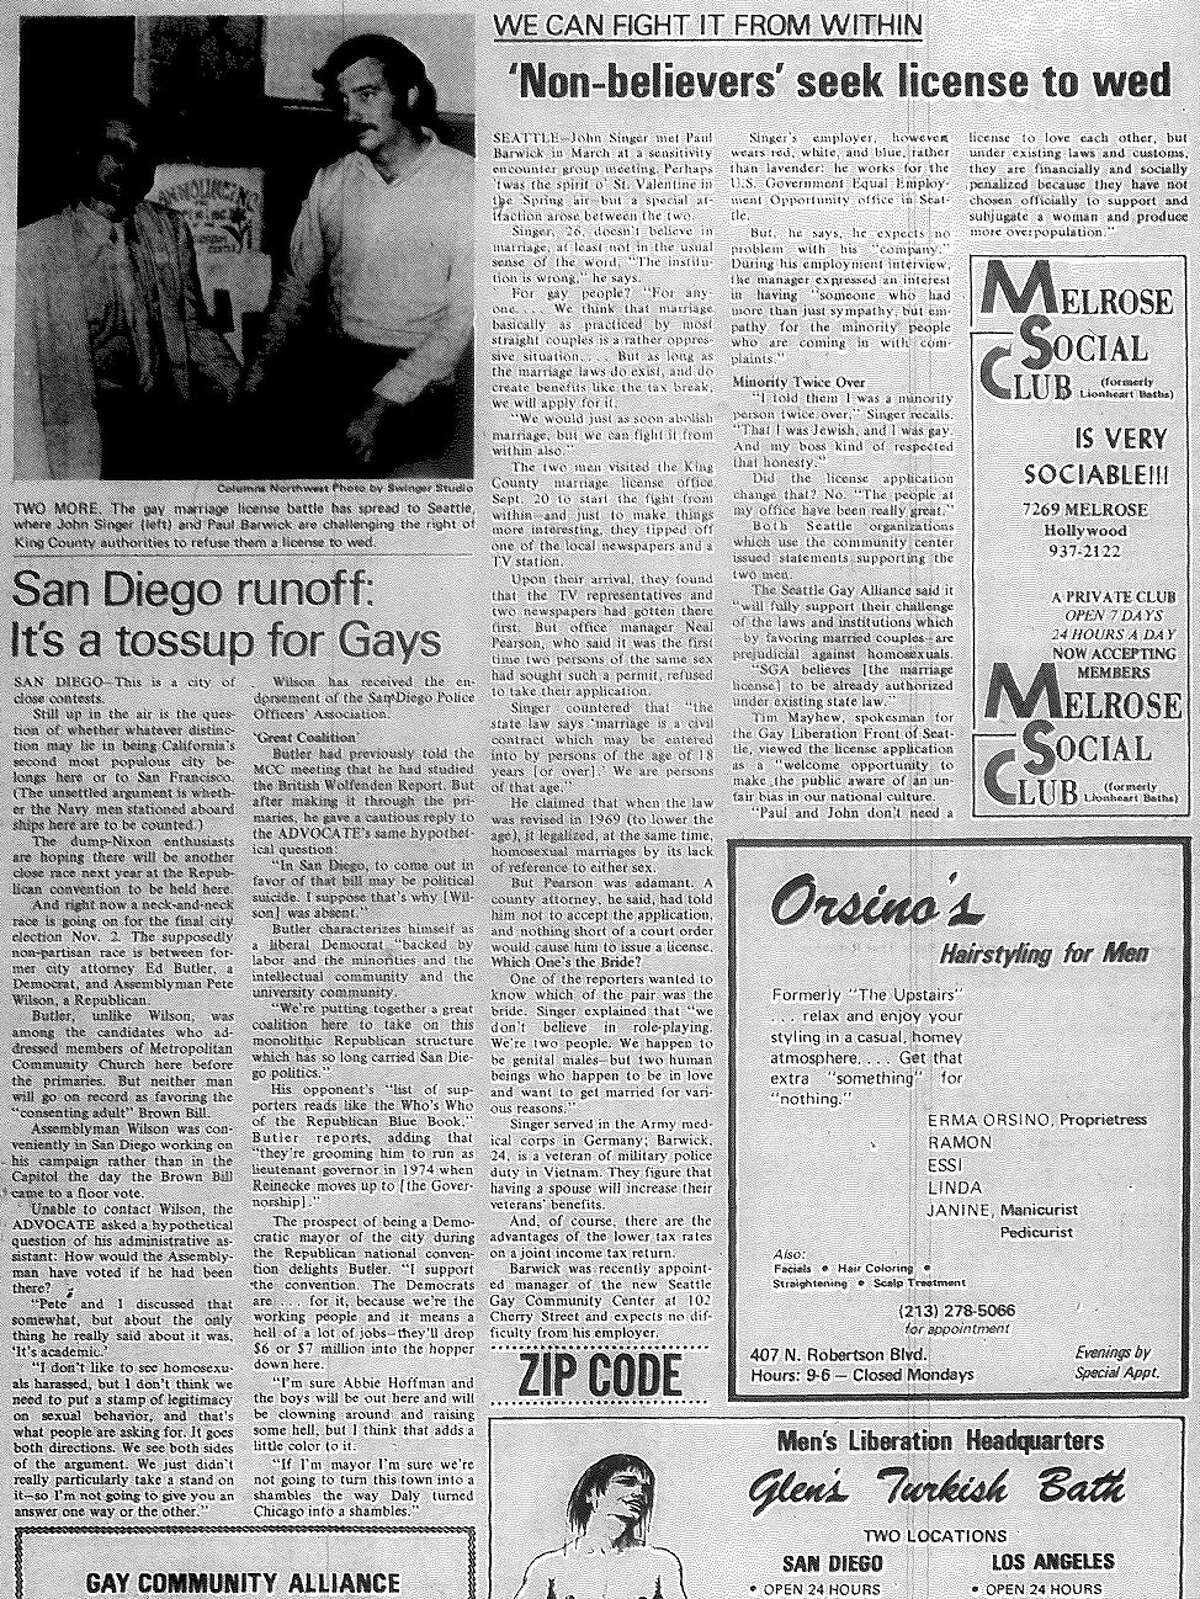 Denied in Washington - September 1971 In another early 1970s case, Washington residents John Singer and Paul Barwick were denied a marriage license there in September 1971. Both men were outspoken in their opposition to the institution of marriage at large, but said they should nonetheless be allowed to marry like any other two people.